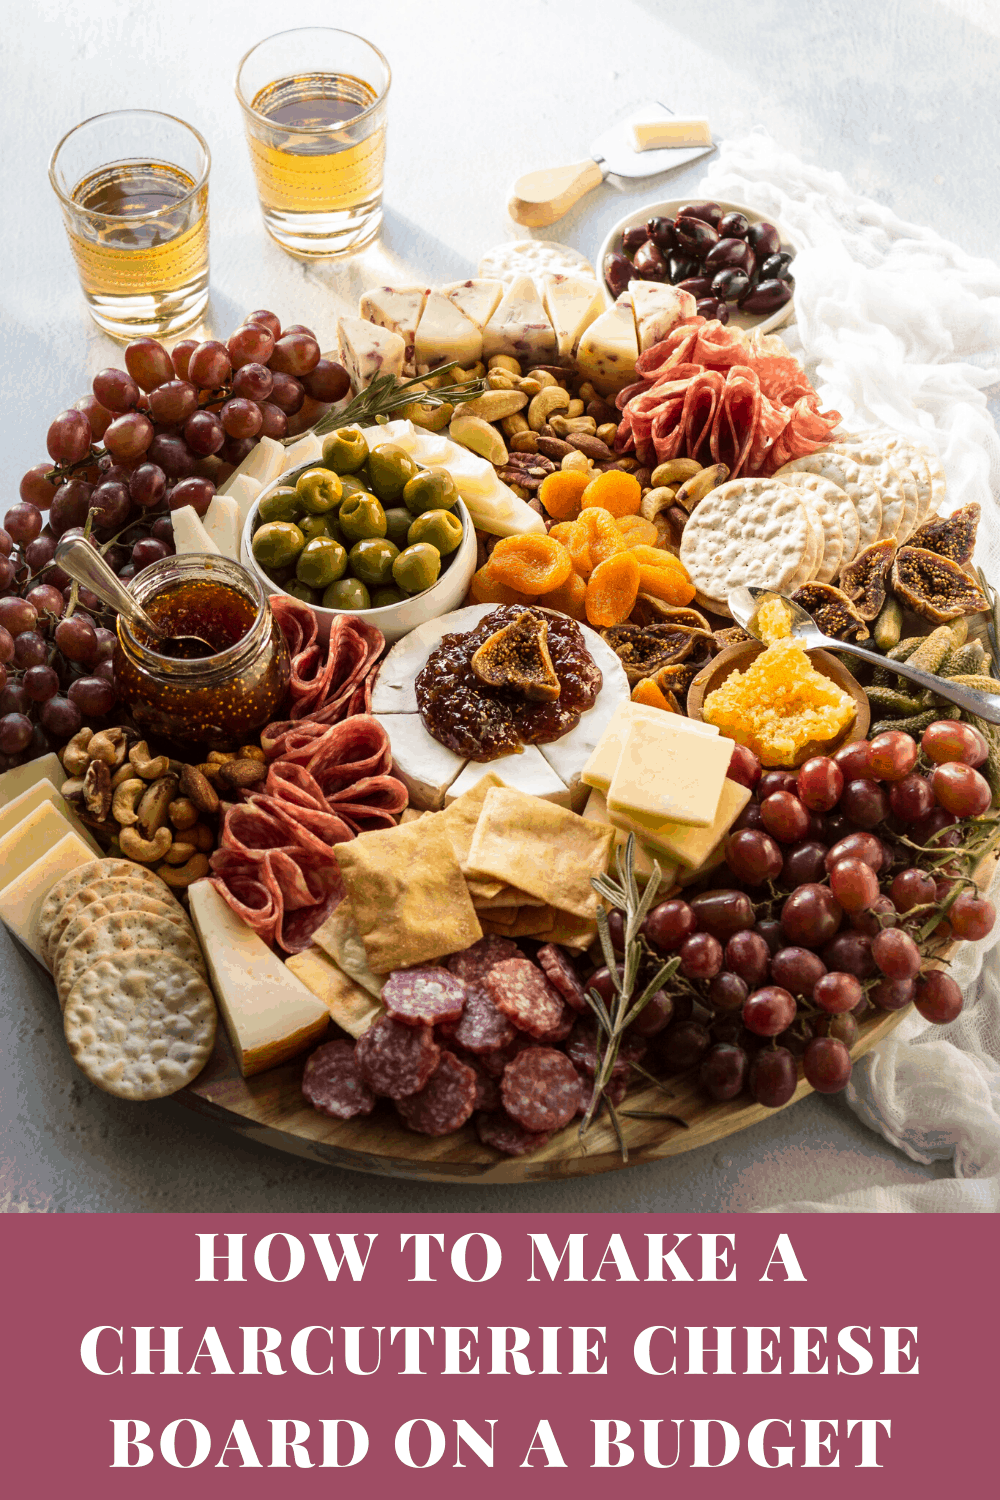 How to make an epic charcuterie cheese board on a budget via @bessiebakes